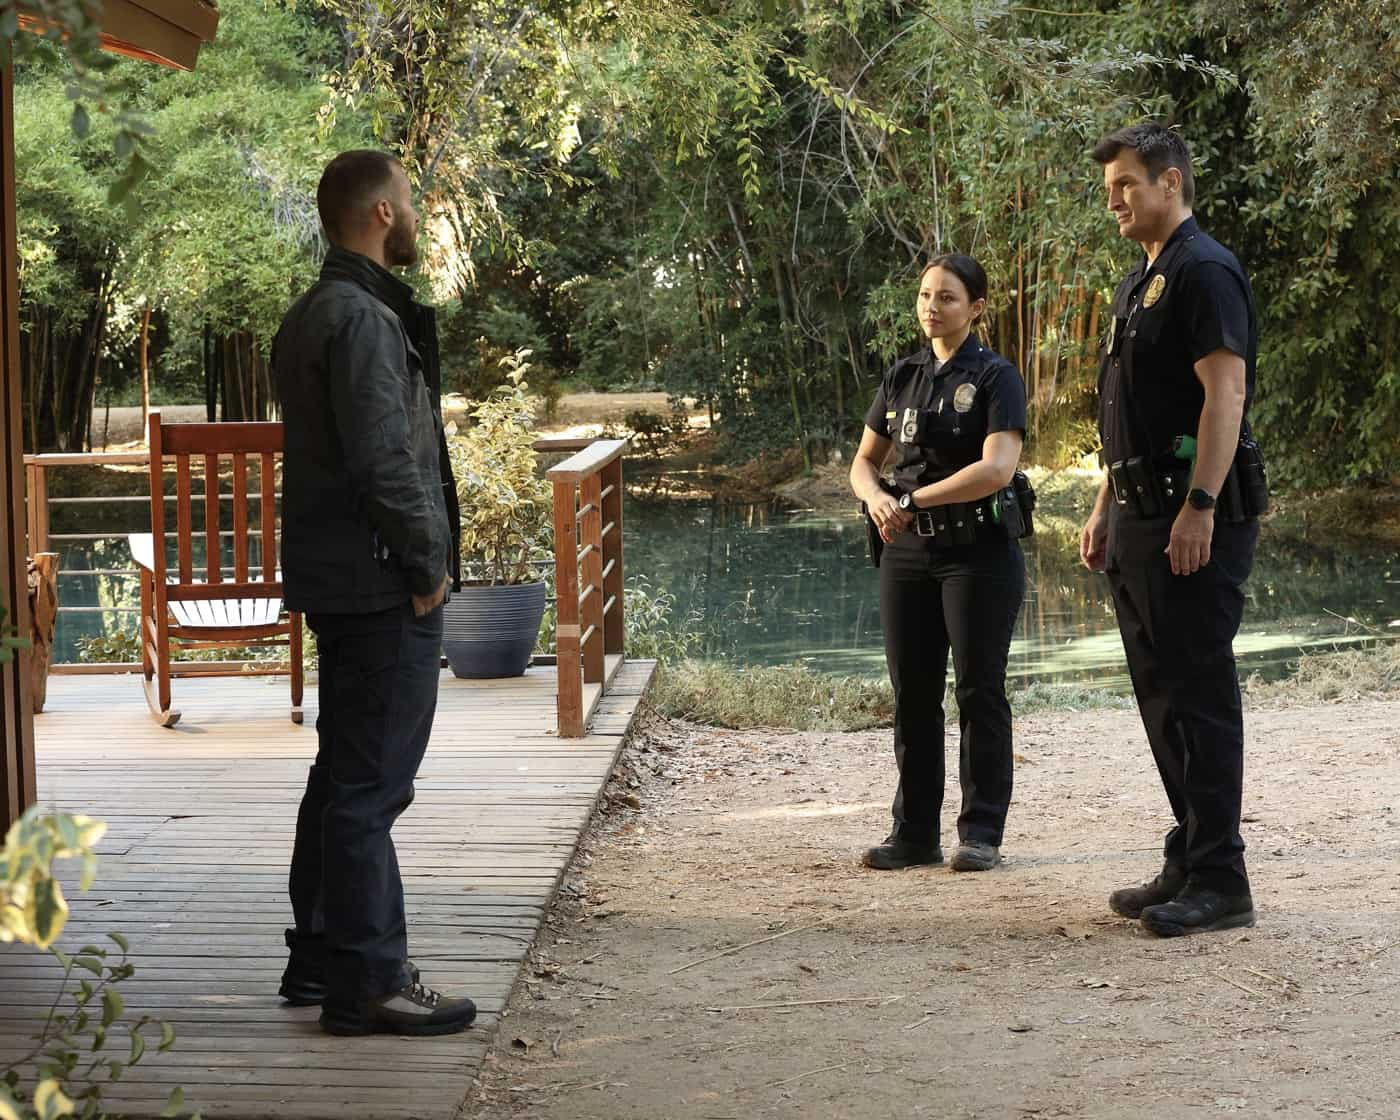 """THE ROOKIE Season 4 Episode 3 - """"In the Line of Fire"""" – Officer Nolan and officer Chen report to a structure fire and suspect that there is more to the situation than meets the eye. Meanwhile, after witnessing a sniper shooting, the team searches for the shooter and discovers that the perpetrator has a connection to one of their own, on an all-new episode of """"The Rookie SUNDAY, OCT. 10 (10:00-11:00 p.m. EDT), on ABC. (ABC/Raymond Liu) MELISSA O'NEIL, NATHAN FILLION"""